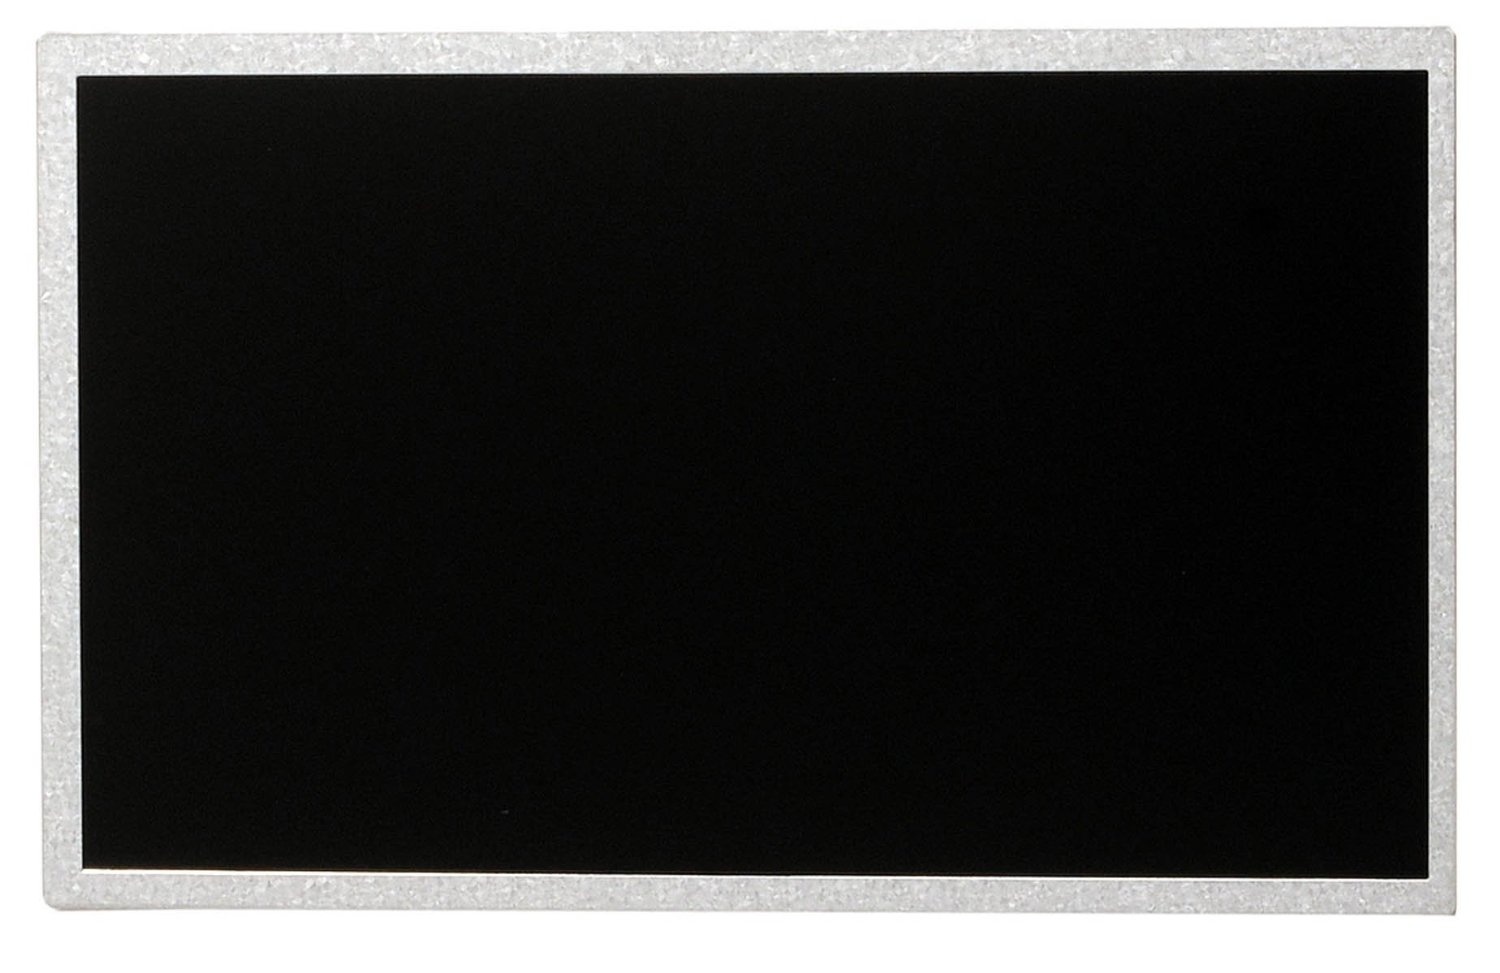 HSD100IFW1 10 LED LCD SCREEN REPLACEMENT FOR ASUS EEE PC 1000 1001HA 1005HA HSD100IFW4